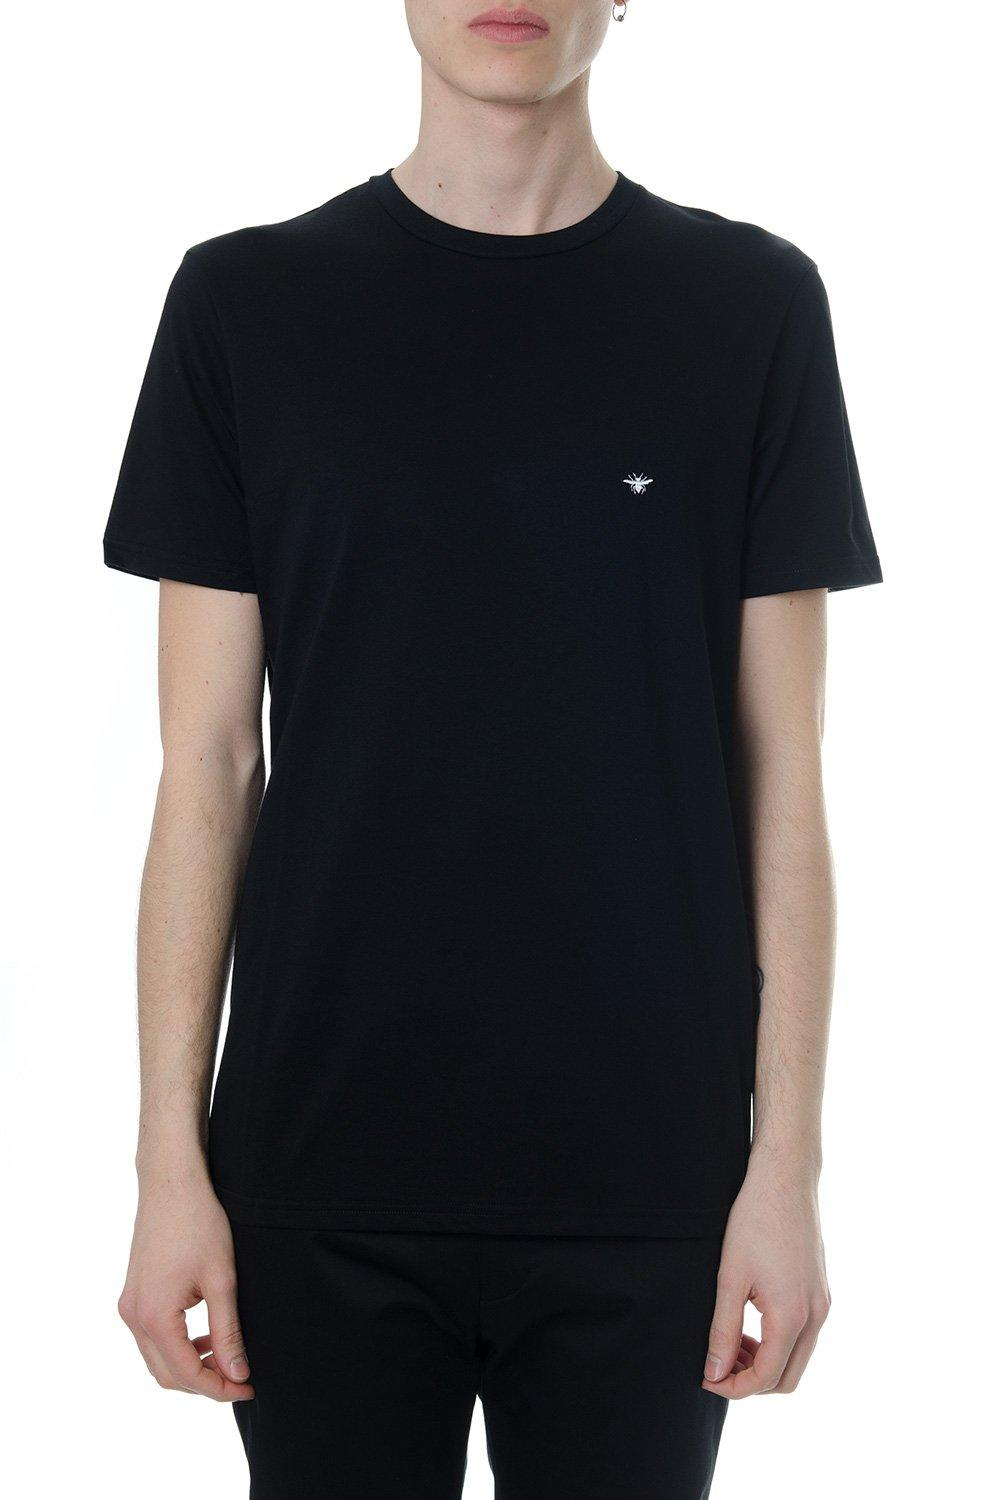 54a4362c Lyst - Dior Homme Bee Embroidered T-shirt in Black for Men